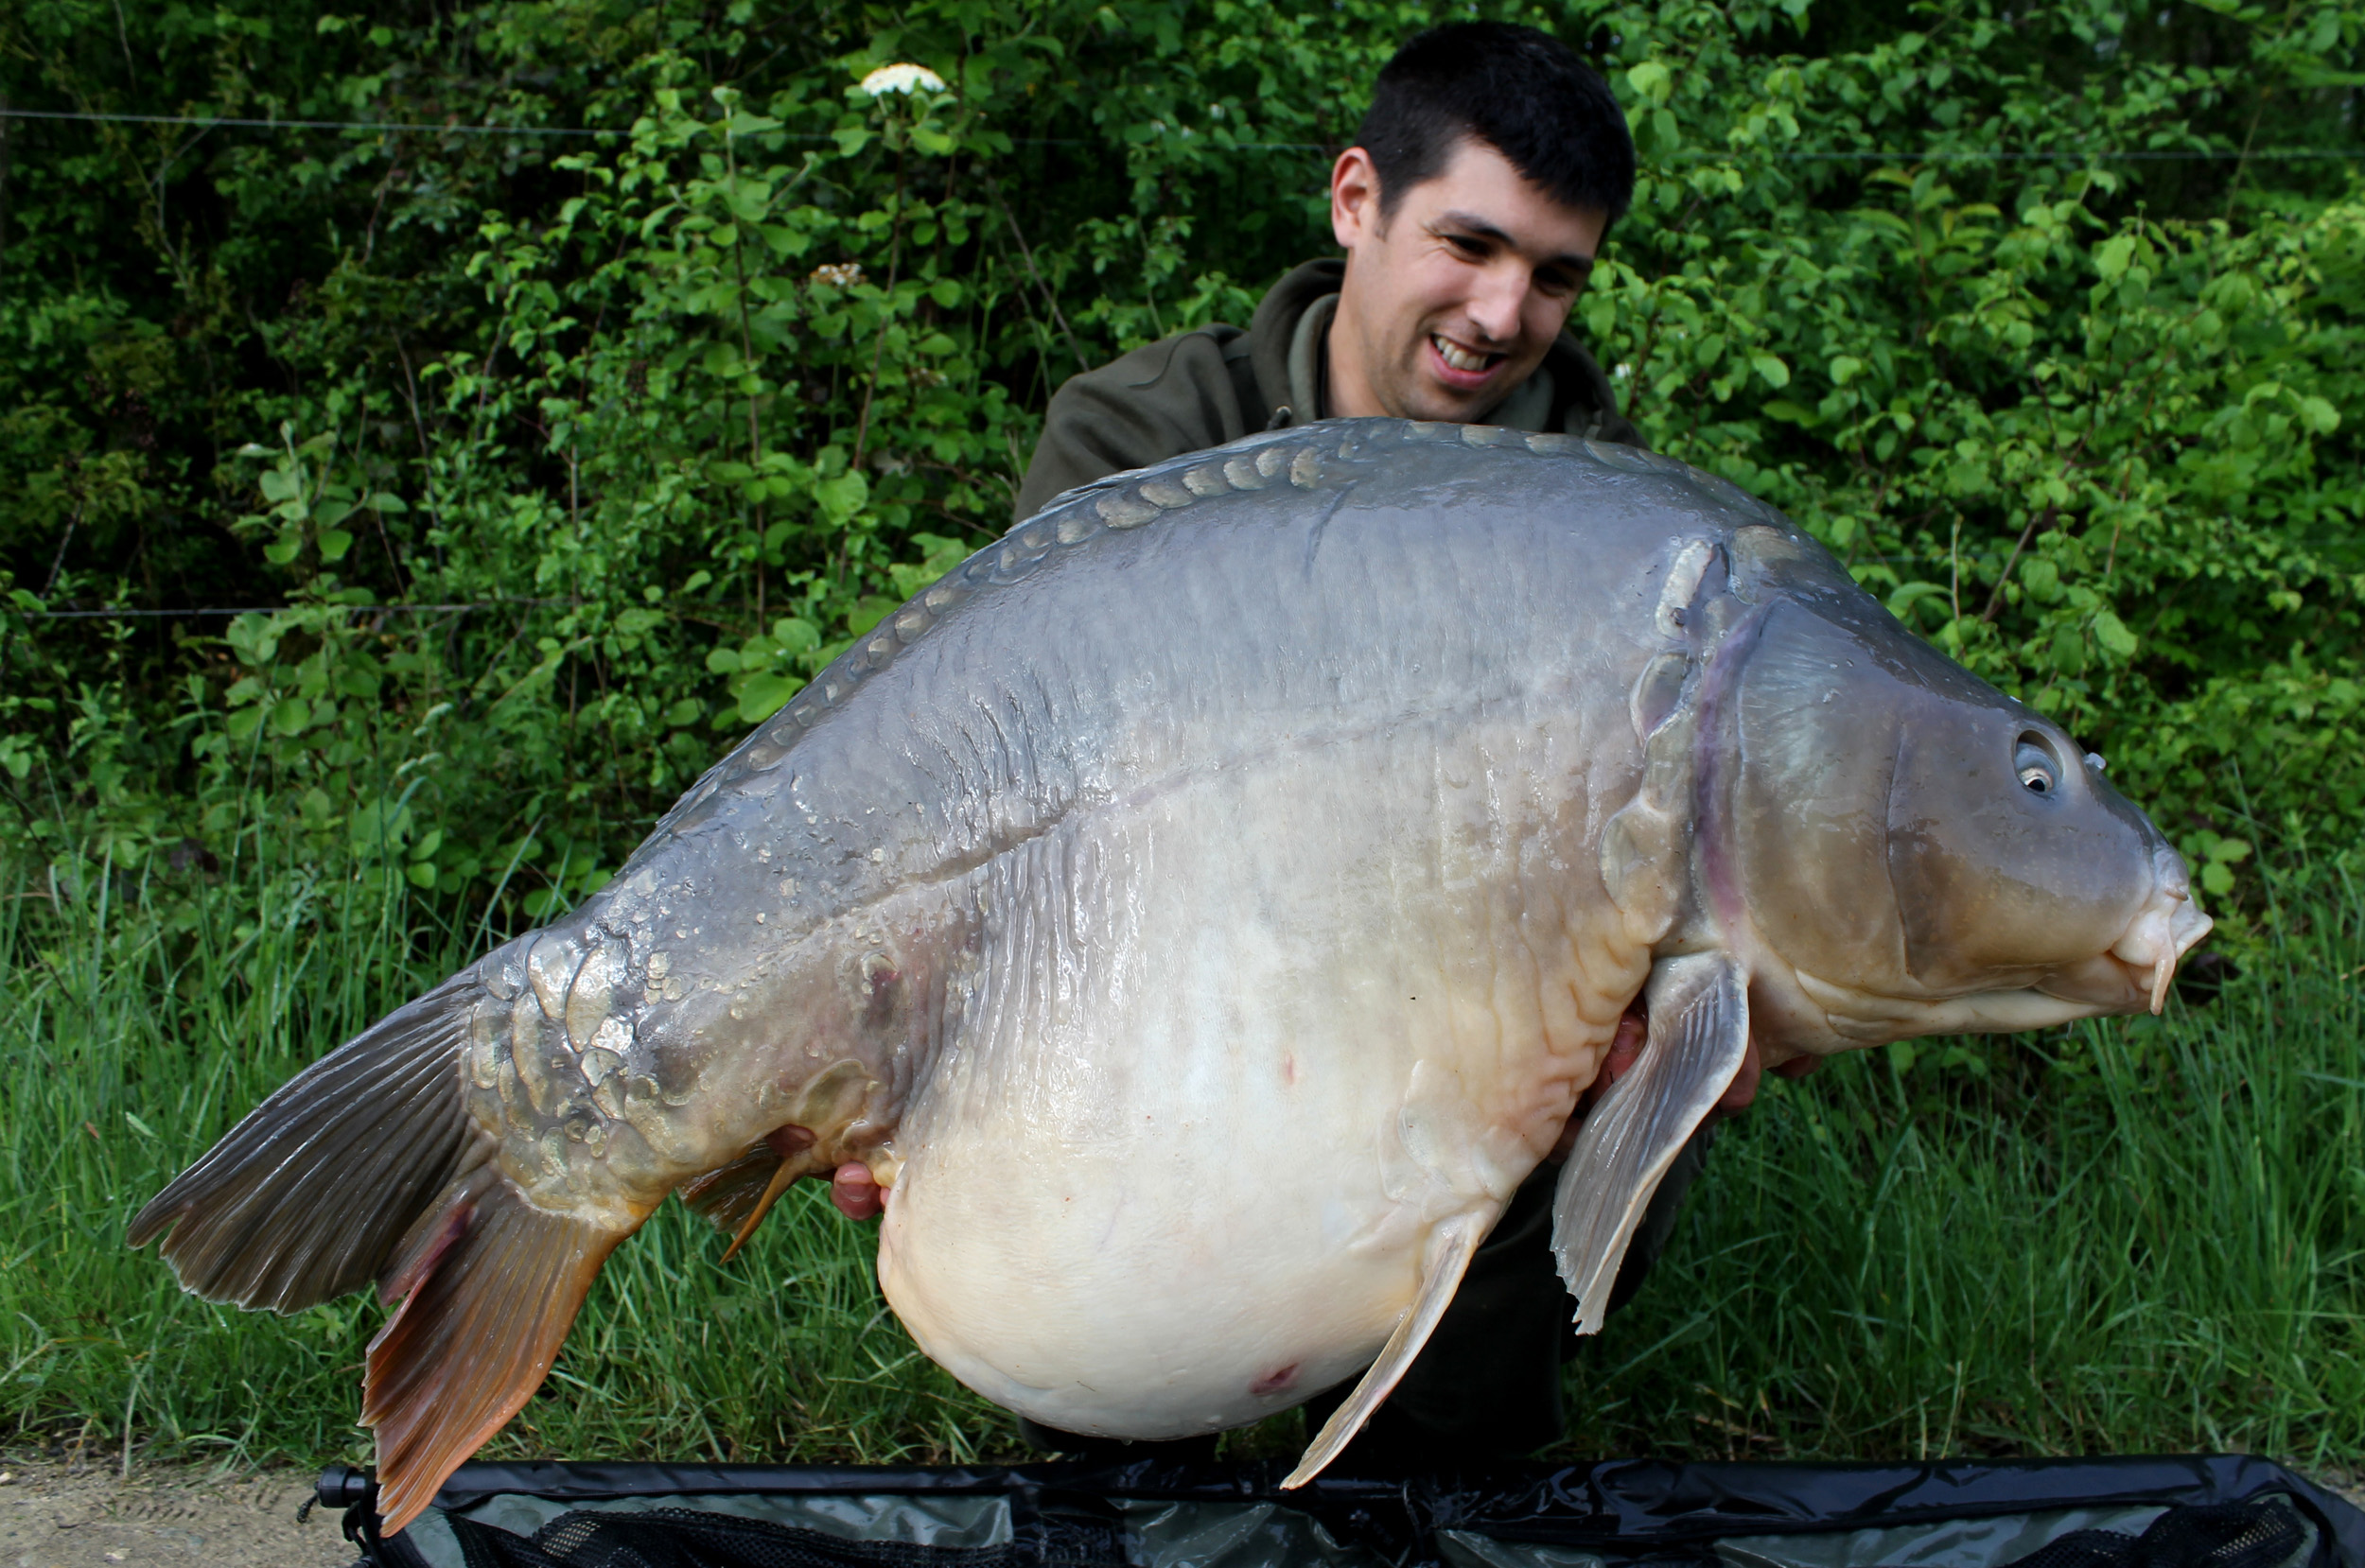 http://www.starbaits.com/fichiers/images/team/gallery/DUCERE_Cedric/11-DUCERE-CEDRIC.jpg